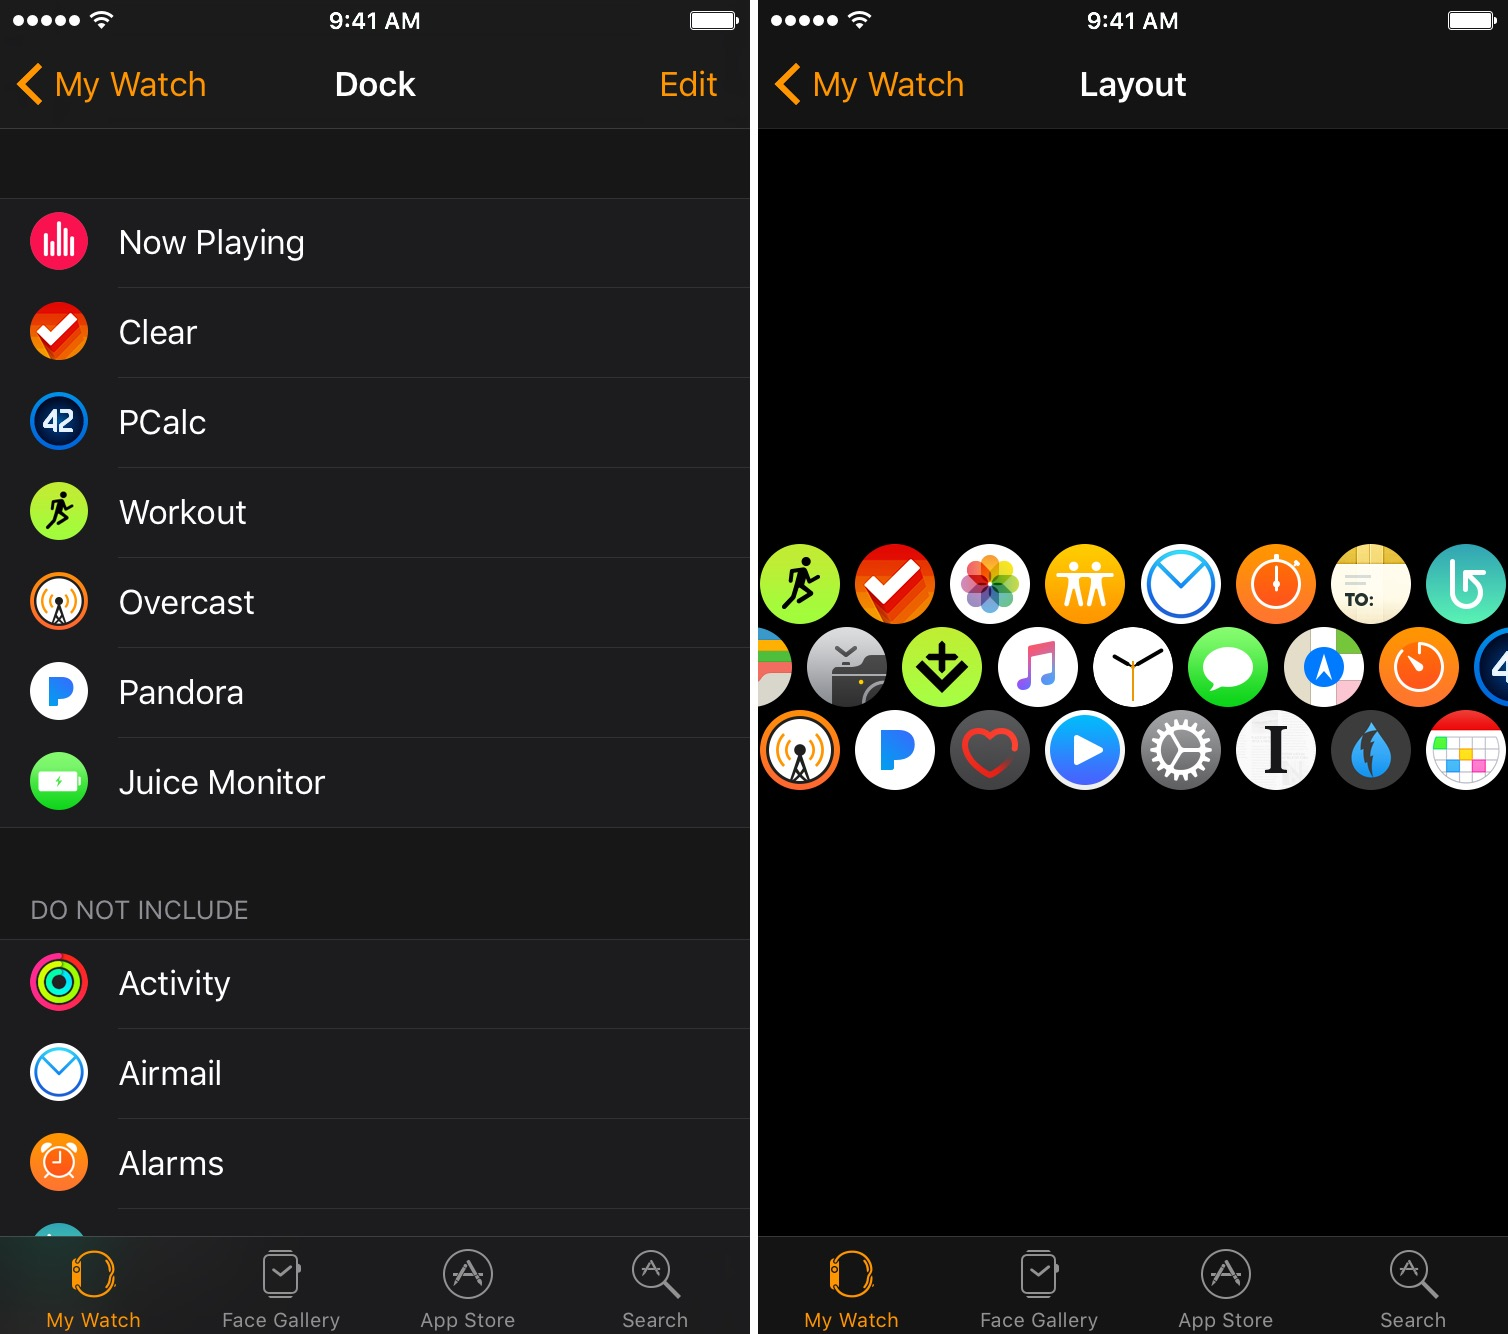 Apple Watch Dock and App Layout